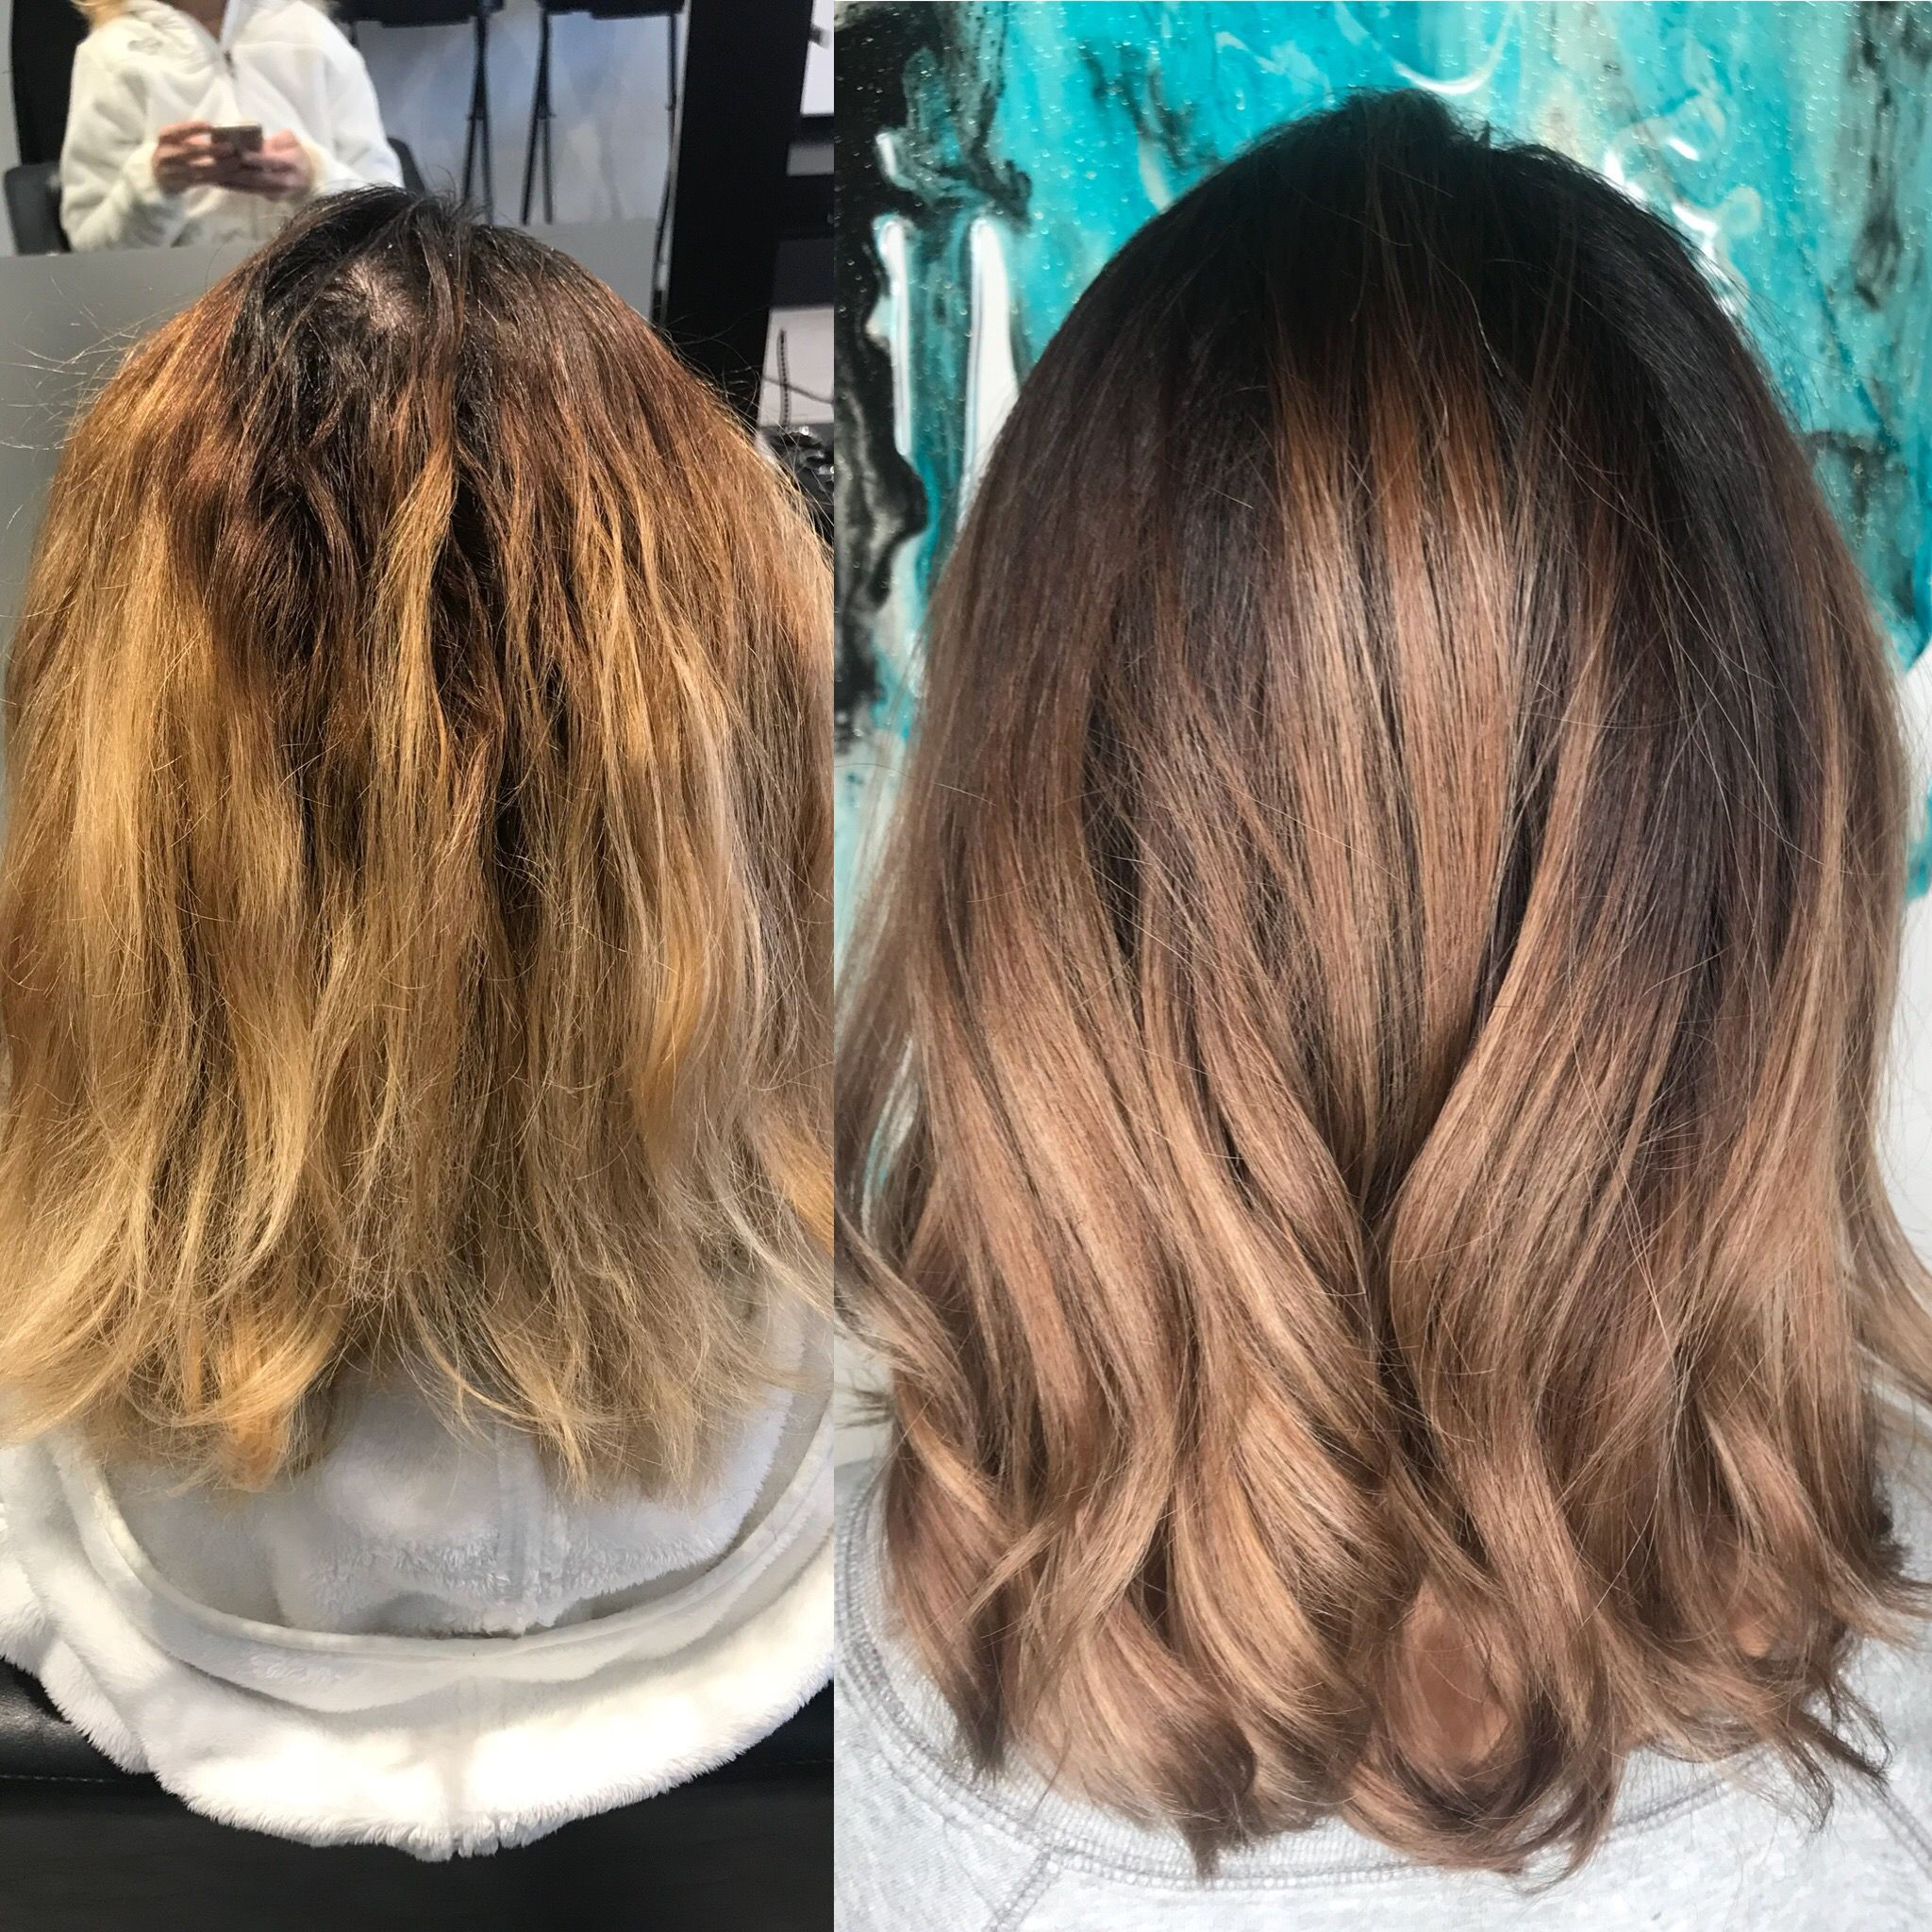 Before And After Transformation Warm Blonde Dark Blonde Ombre Cool Brunette Fall Hair Milky Chocolate Curly Hair Cur Warm Blonde Blonde Ombre Dark Blonde Ombre